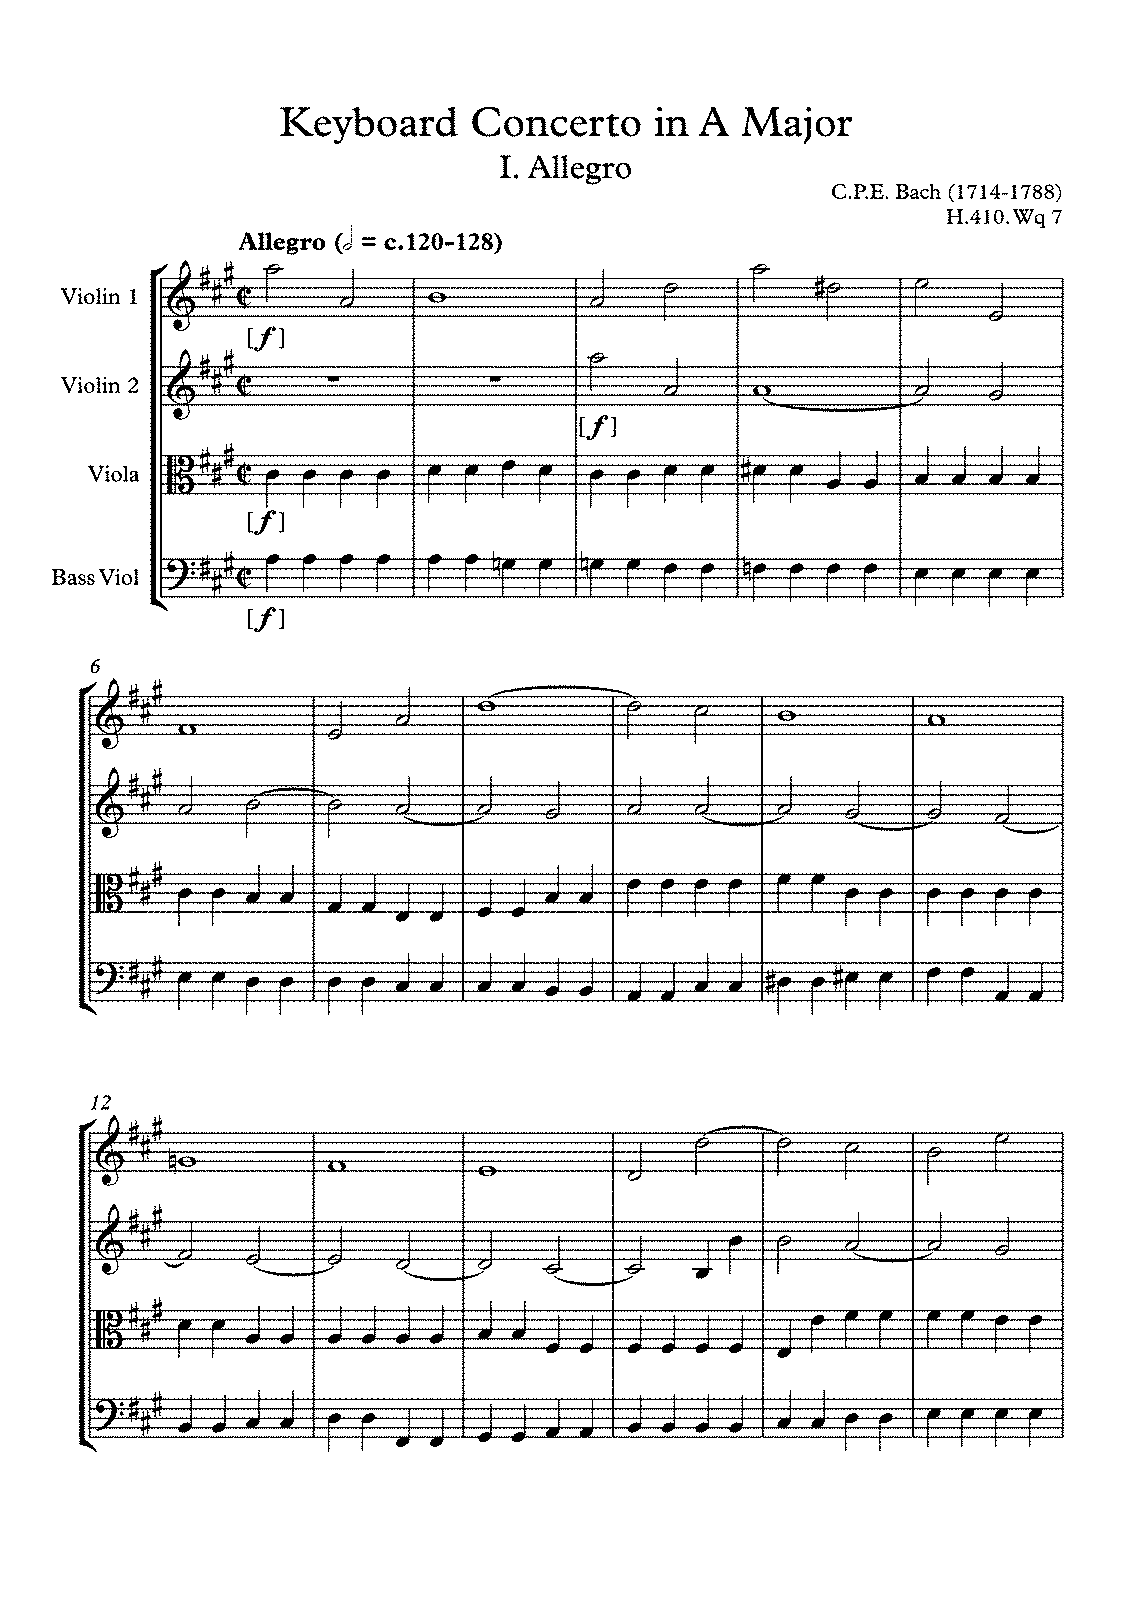 PMLP558278-CPE Bach - Keyboard Concerto in A Major.pdf